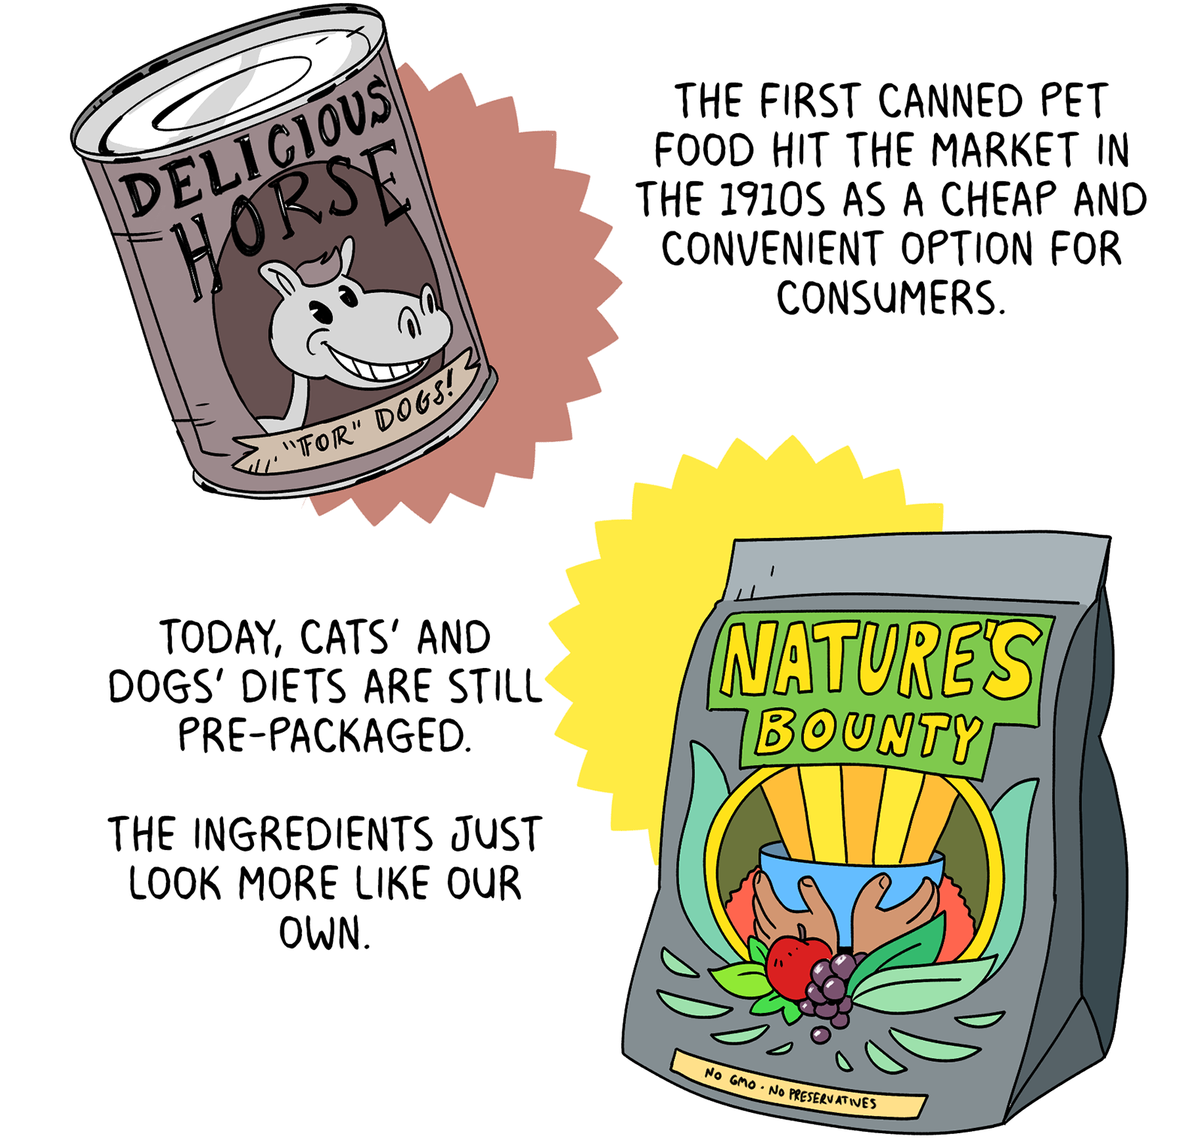 The first canned pet food hit the market in the 1910s as a cheap and convenient option for consumers. Today, cats' and dogs' diets are still pre-packaged. The ingredients just look more like our own.